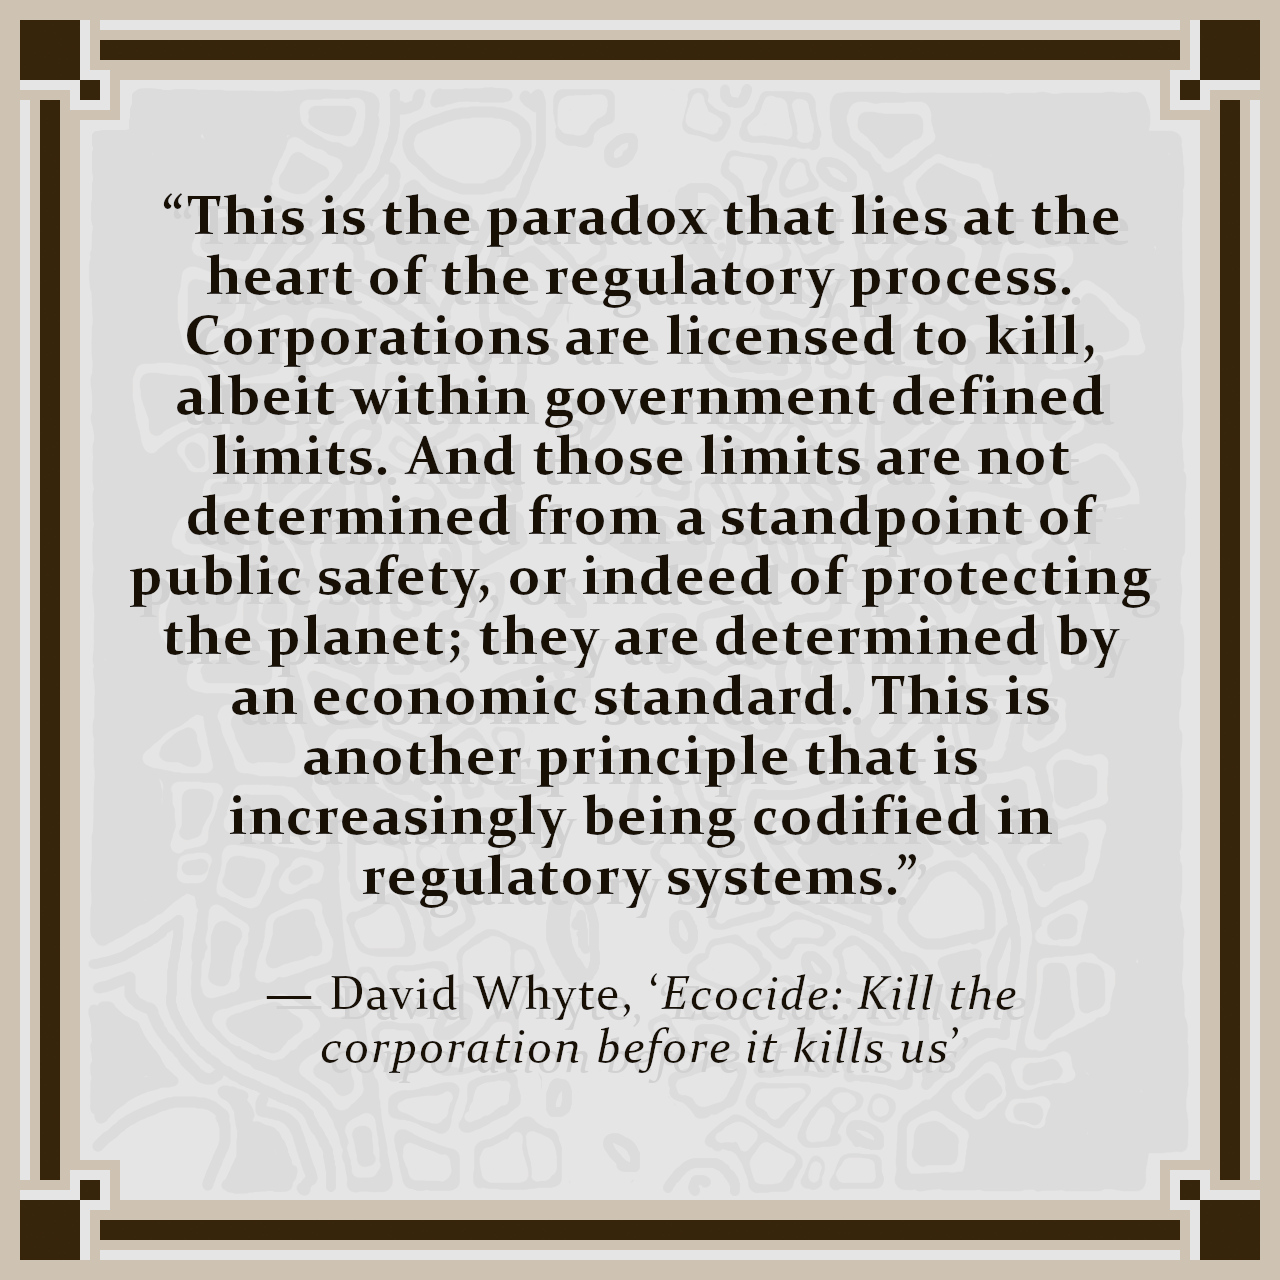 """""""This is the paradox that lies at the heart of the regulatory process. Corporations are licensed to kill, albeit within government defined limits. And those limits are not determined from a standpoint of public safety, or indeed of protecting the planet; they are determined by an economic standard. This is another principle that is increasingly being codified in regulatory systems."""" — David Whyte, 'Ecocide: Kill the corporation before it kills us'"""